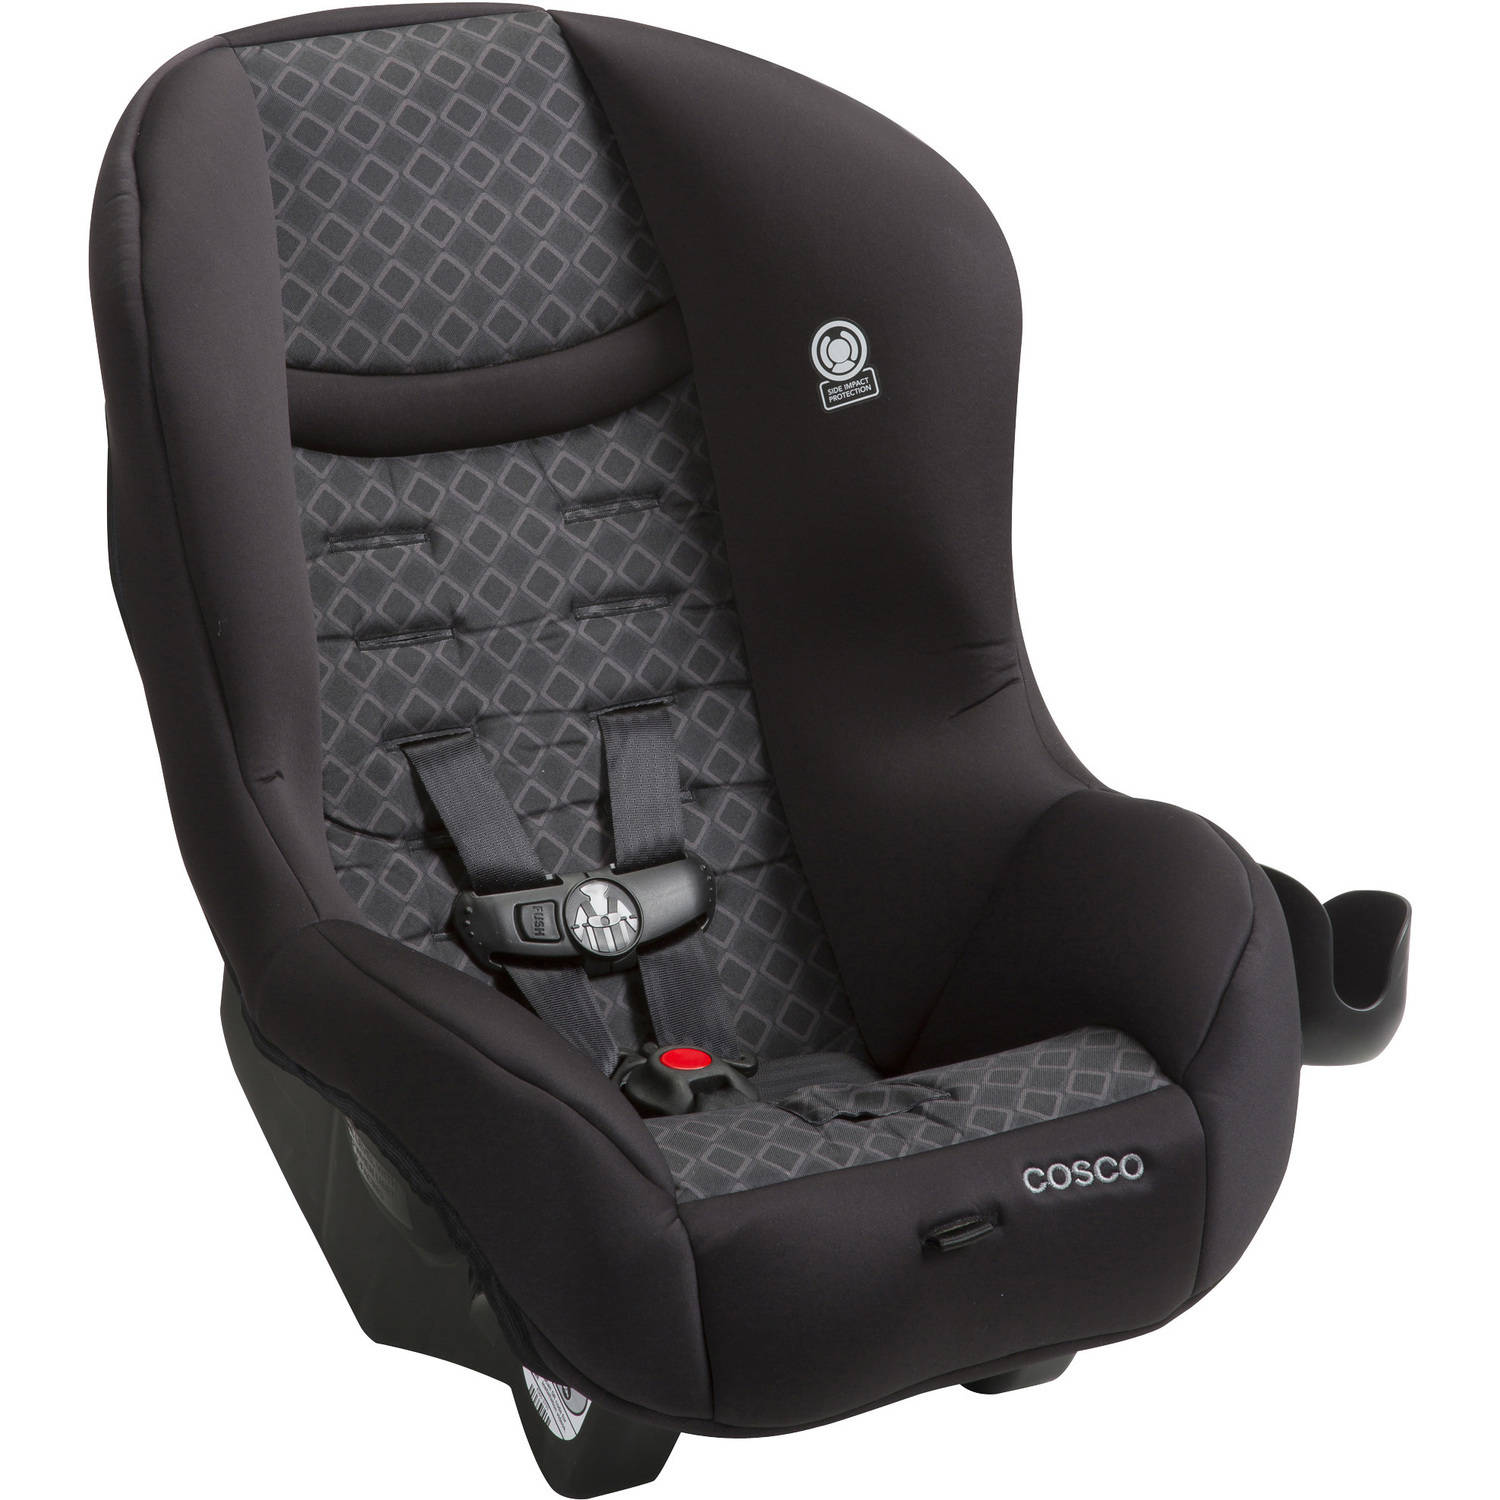 Cosco Scenera Next Convertible Car Seat, Boulder II